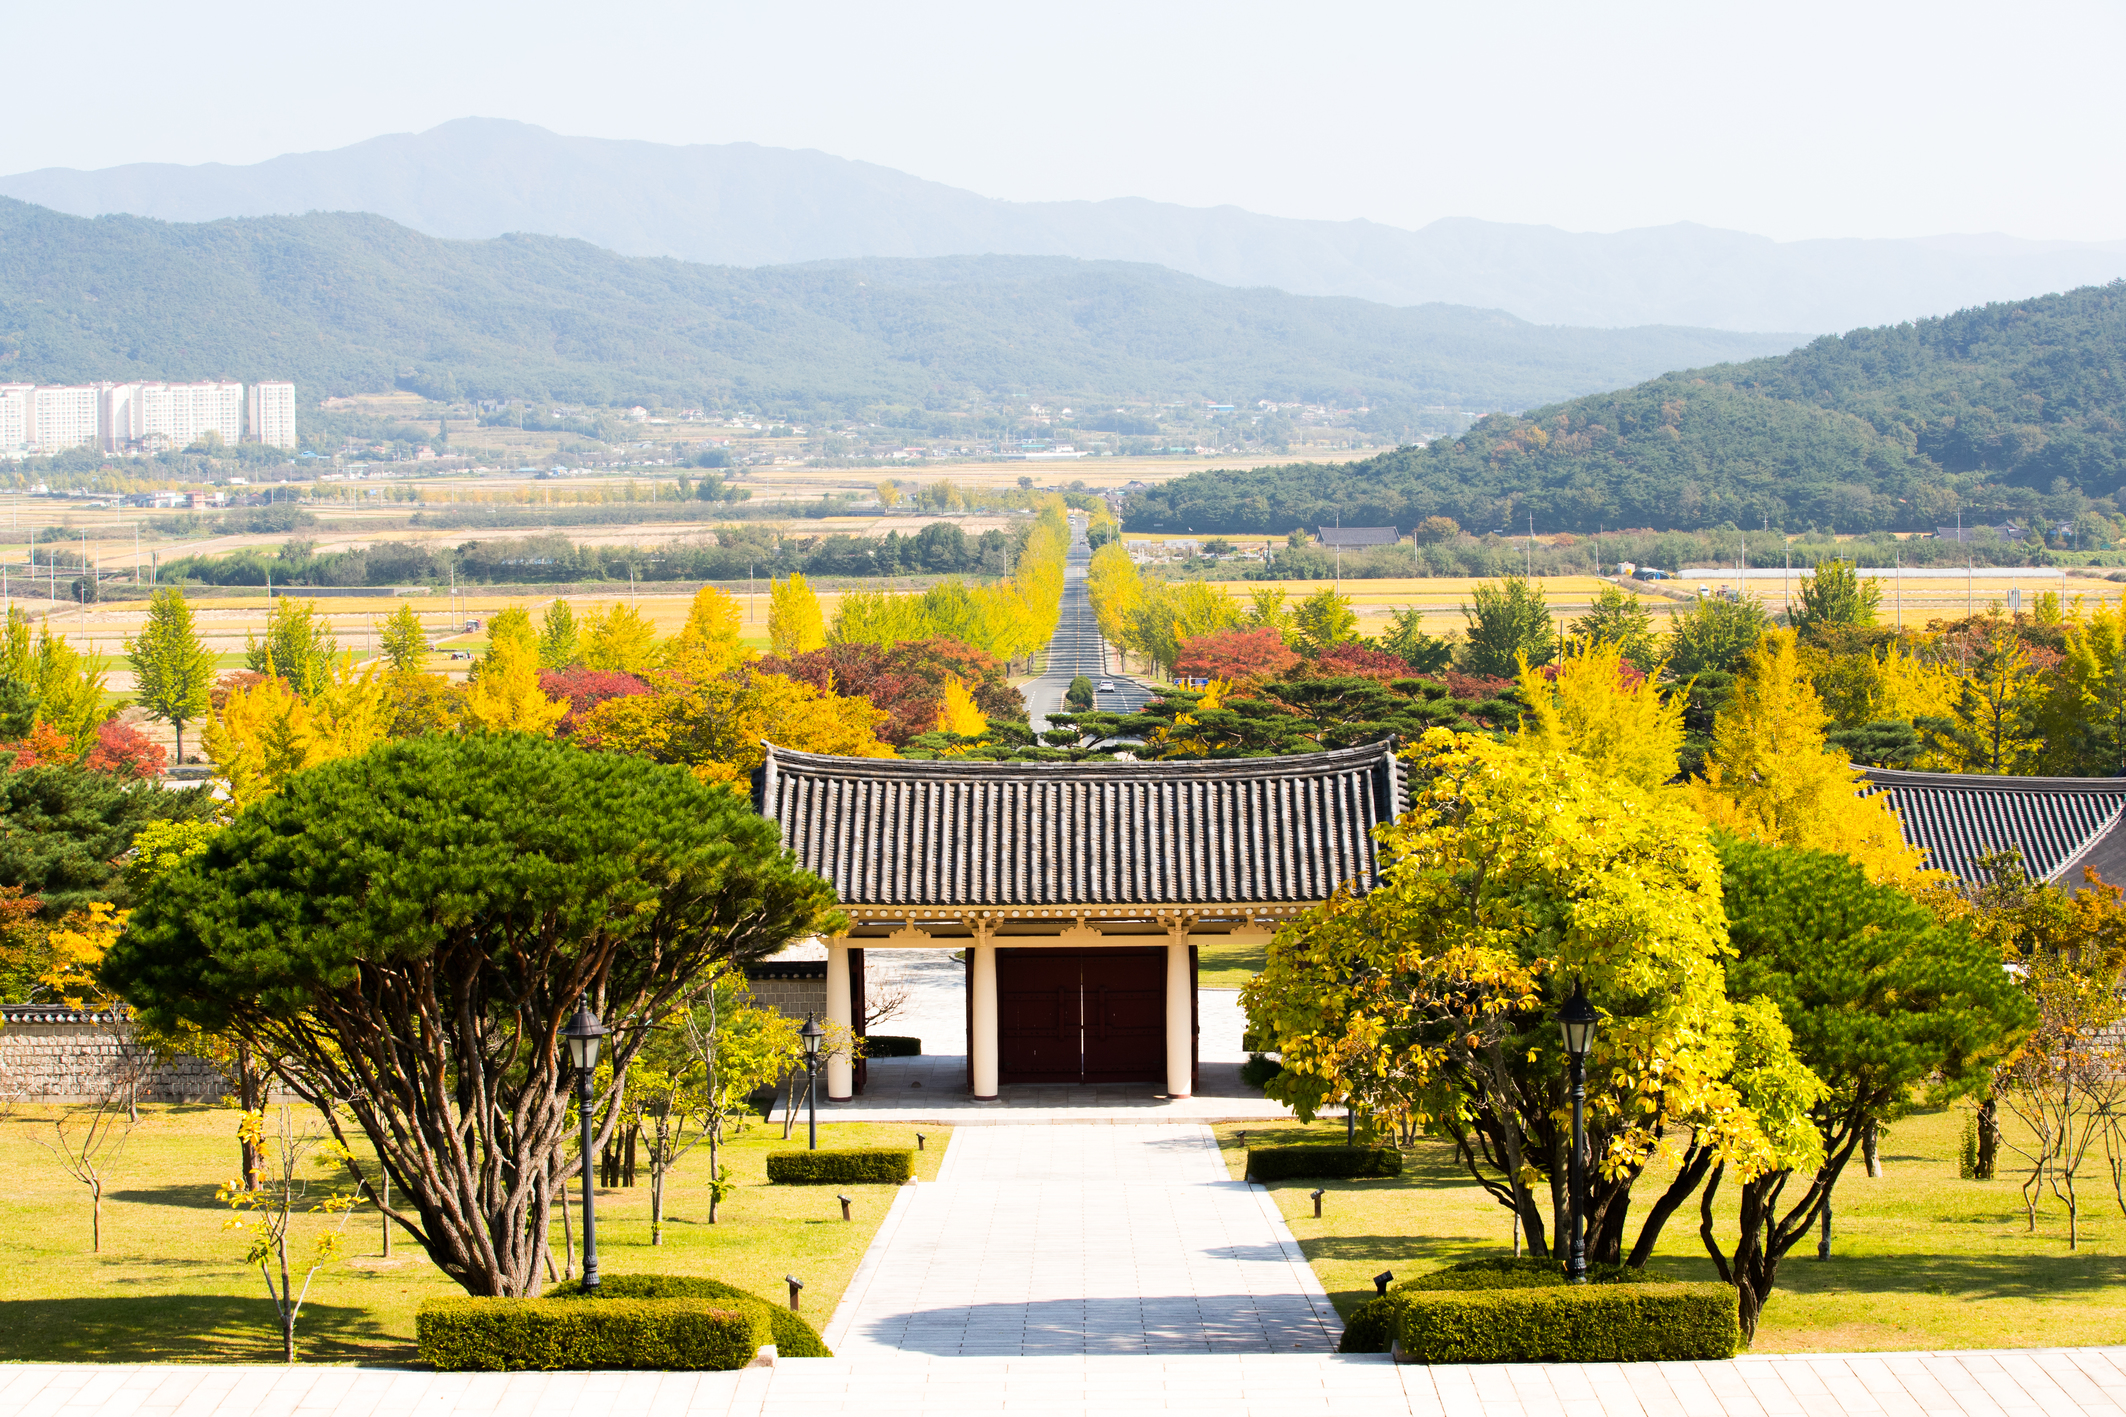 (Autumn) Gyeongju Foliage One Day Tour - Depart from Busan